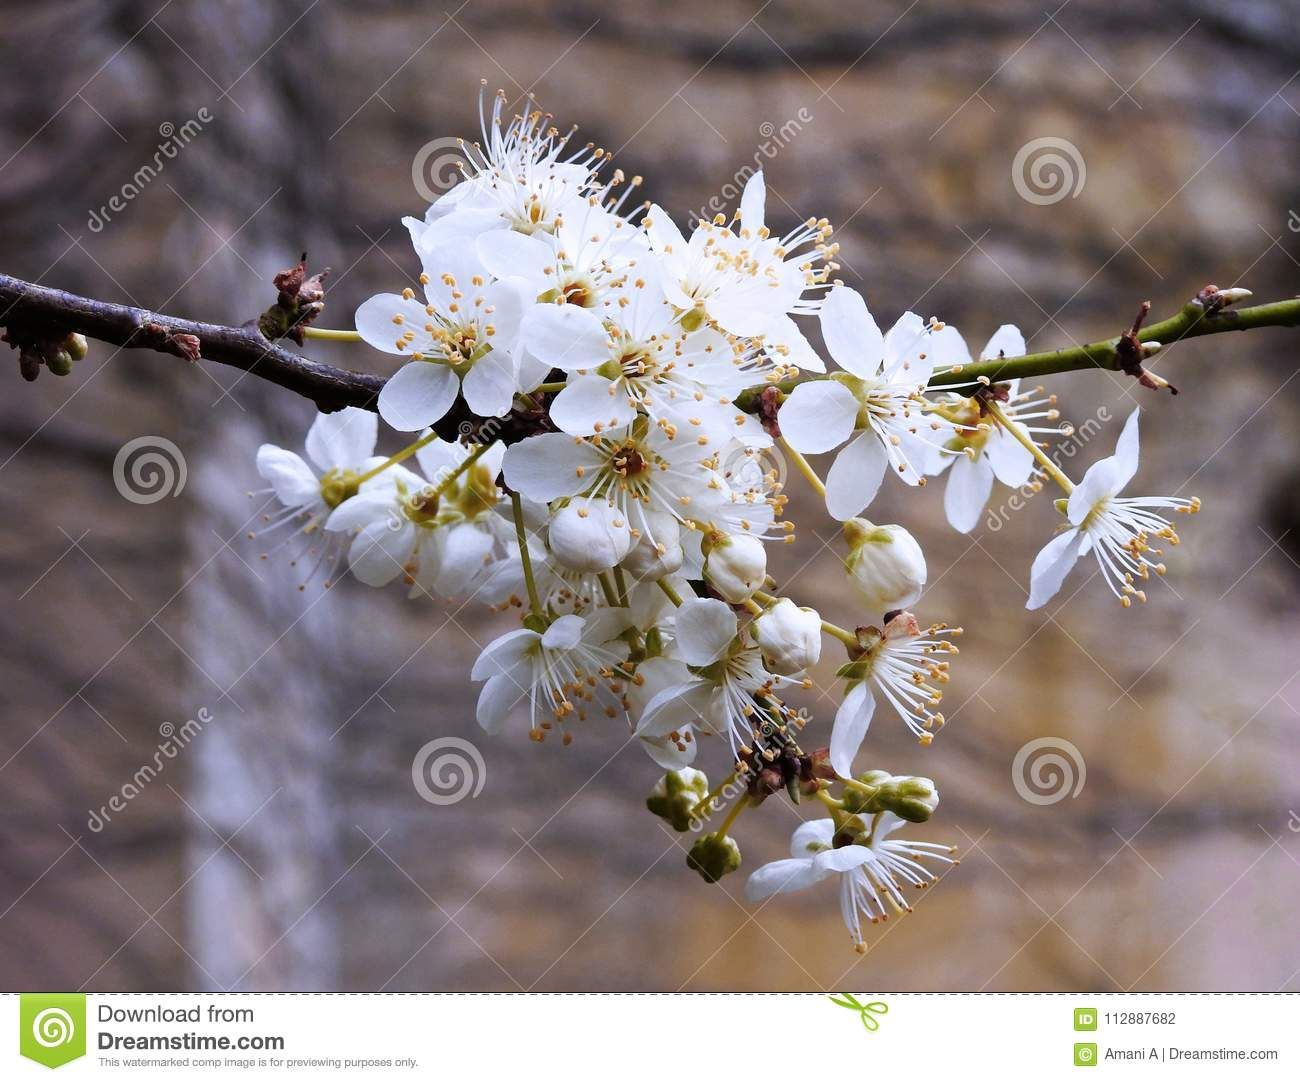 Photo About A Cluster Of White Blossoms On A Plum Tree In Spring In The Uk Image Of White Blossoms Beauty 112887682 Plum Blossom Blossom Plum Tree